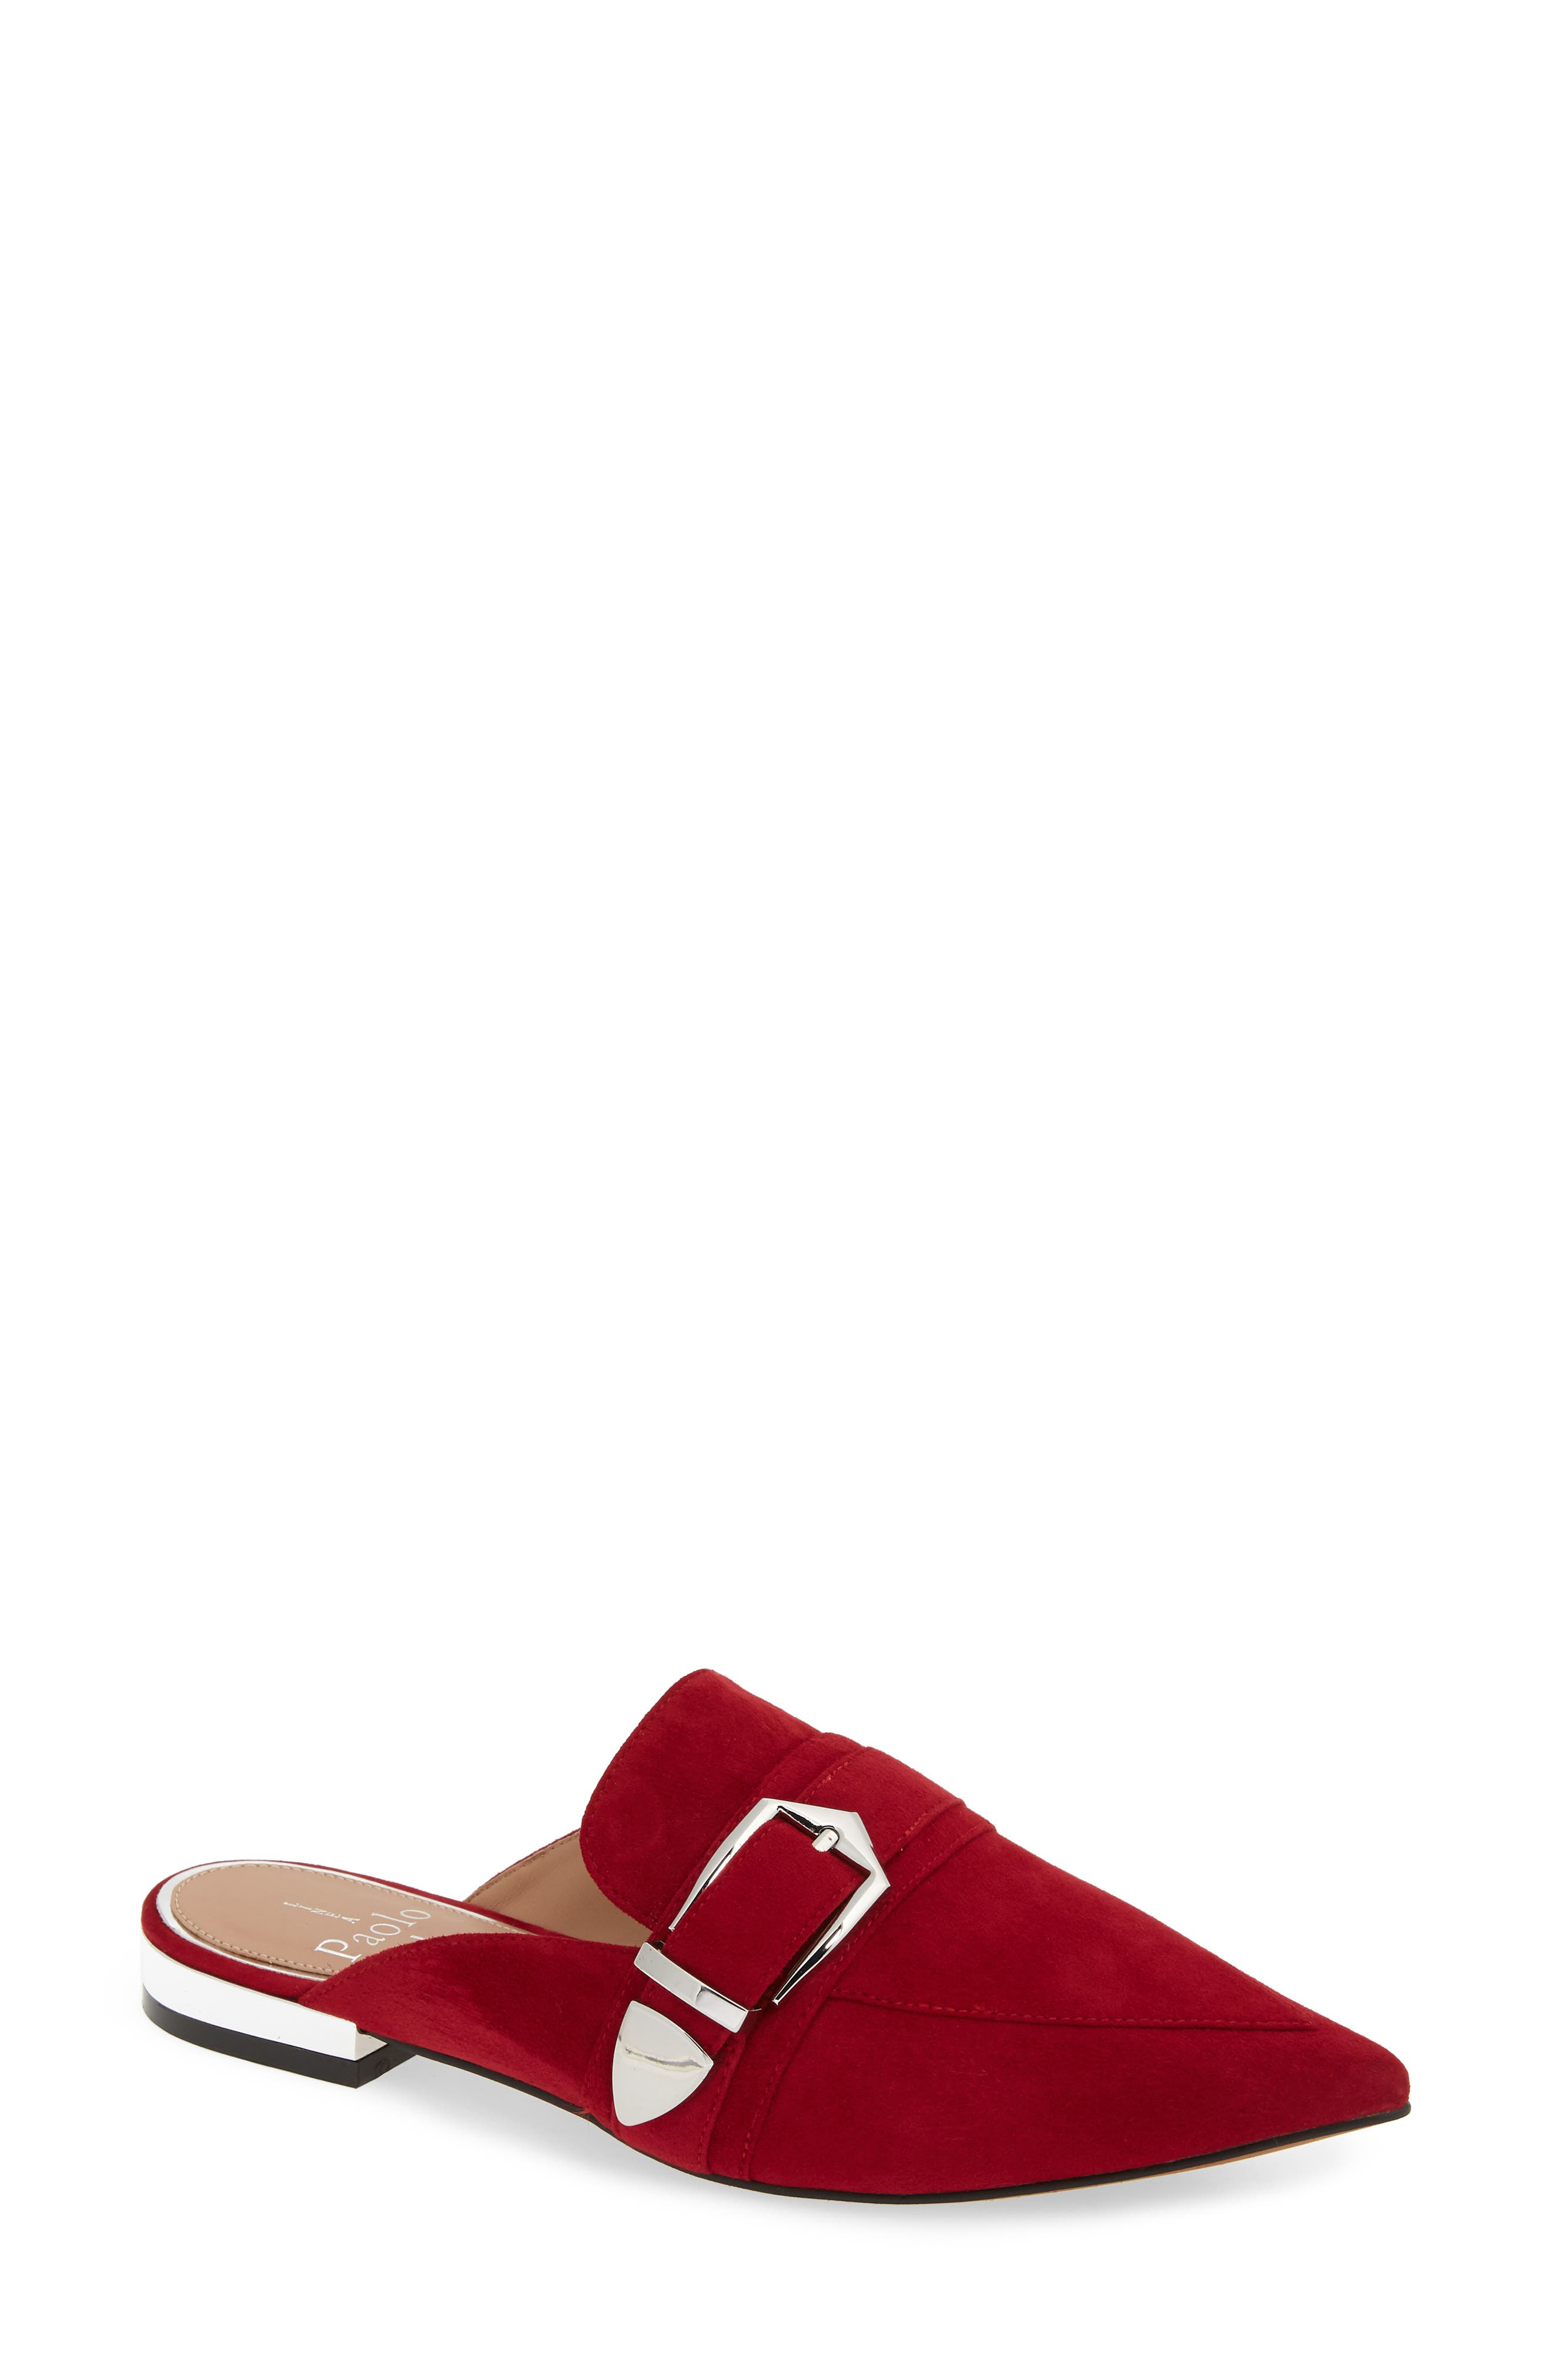 Ace Buckle Pointed Toe Mule